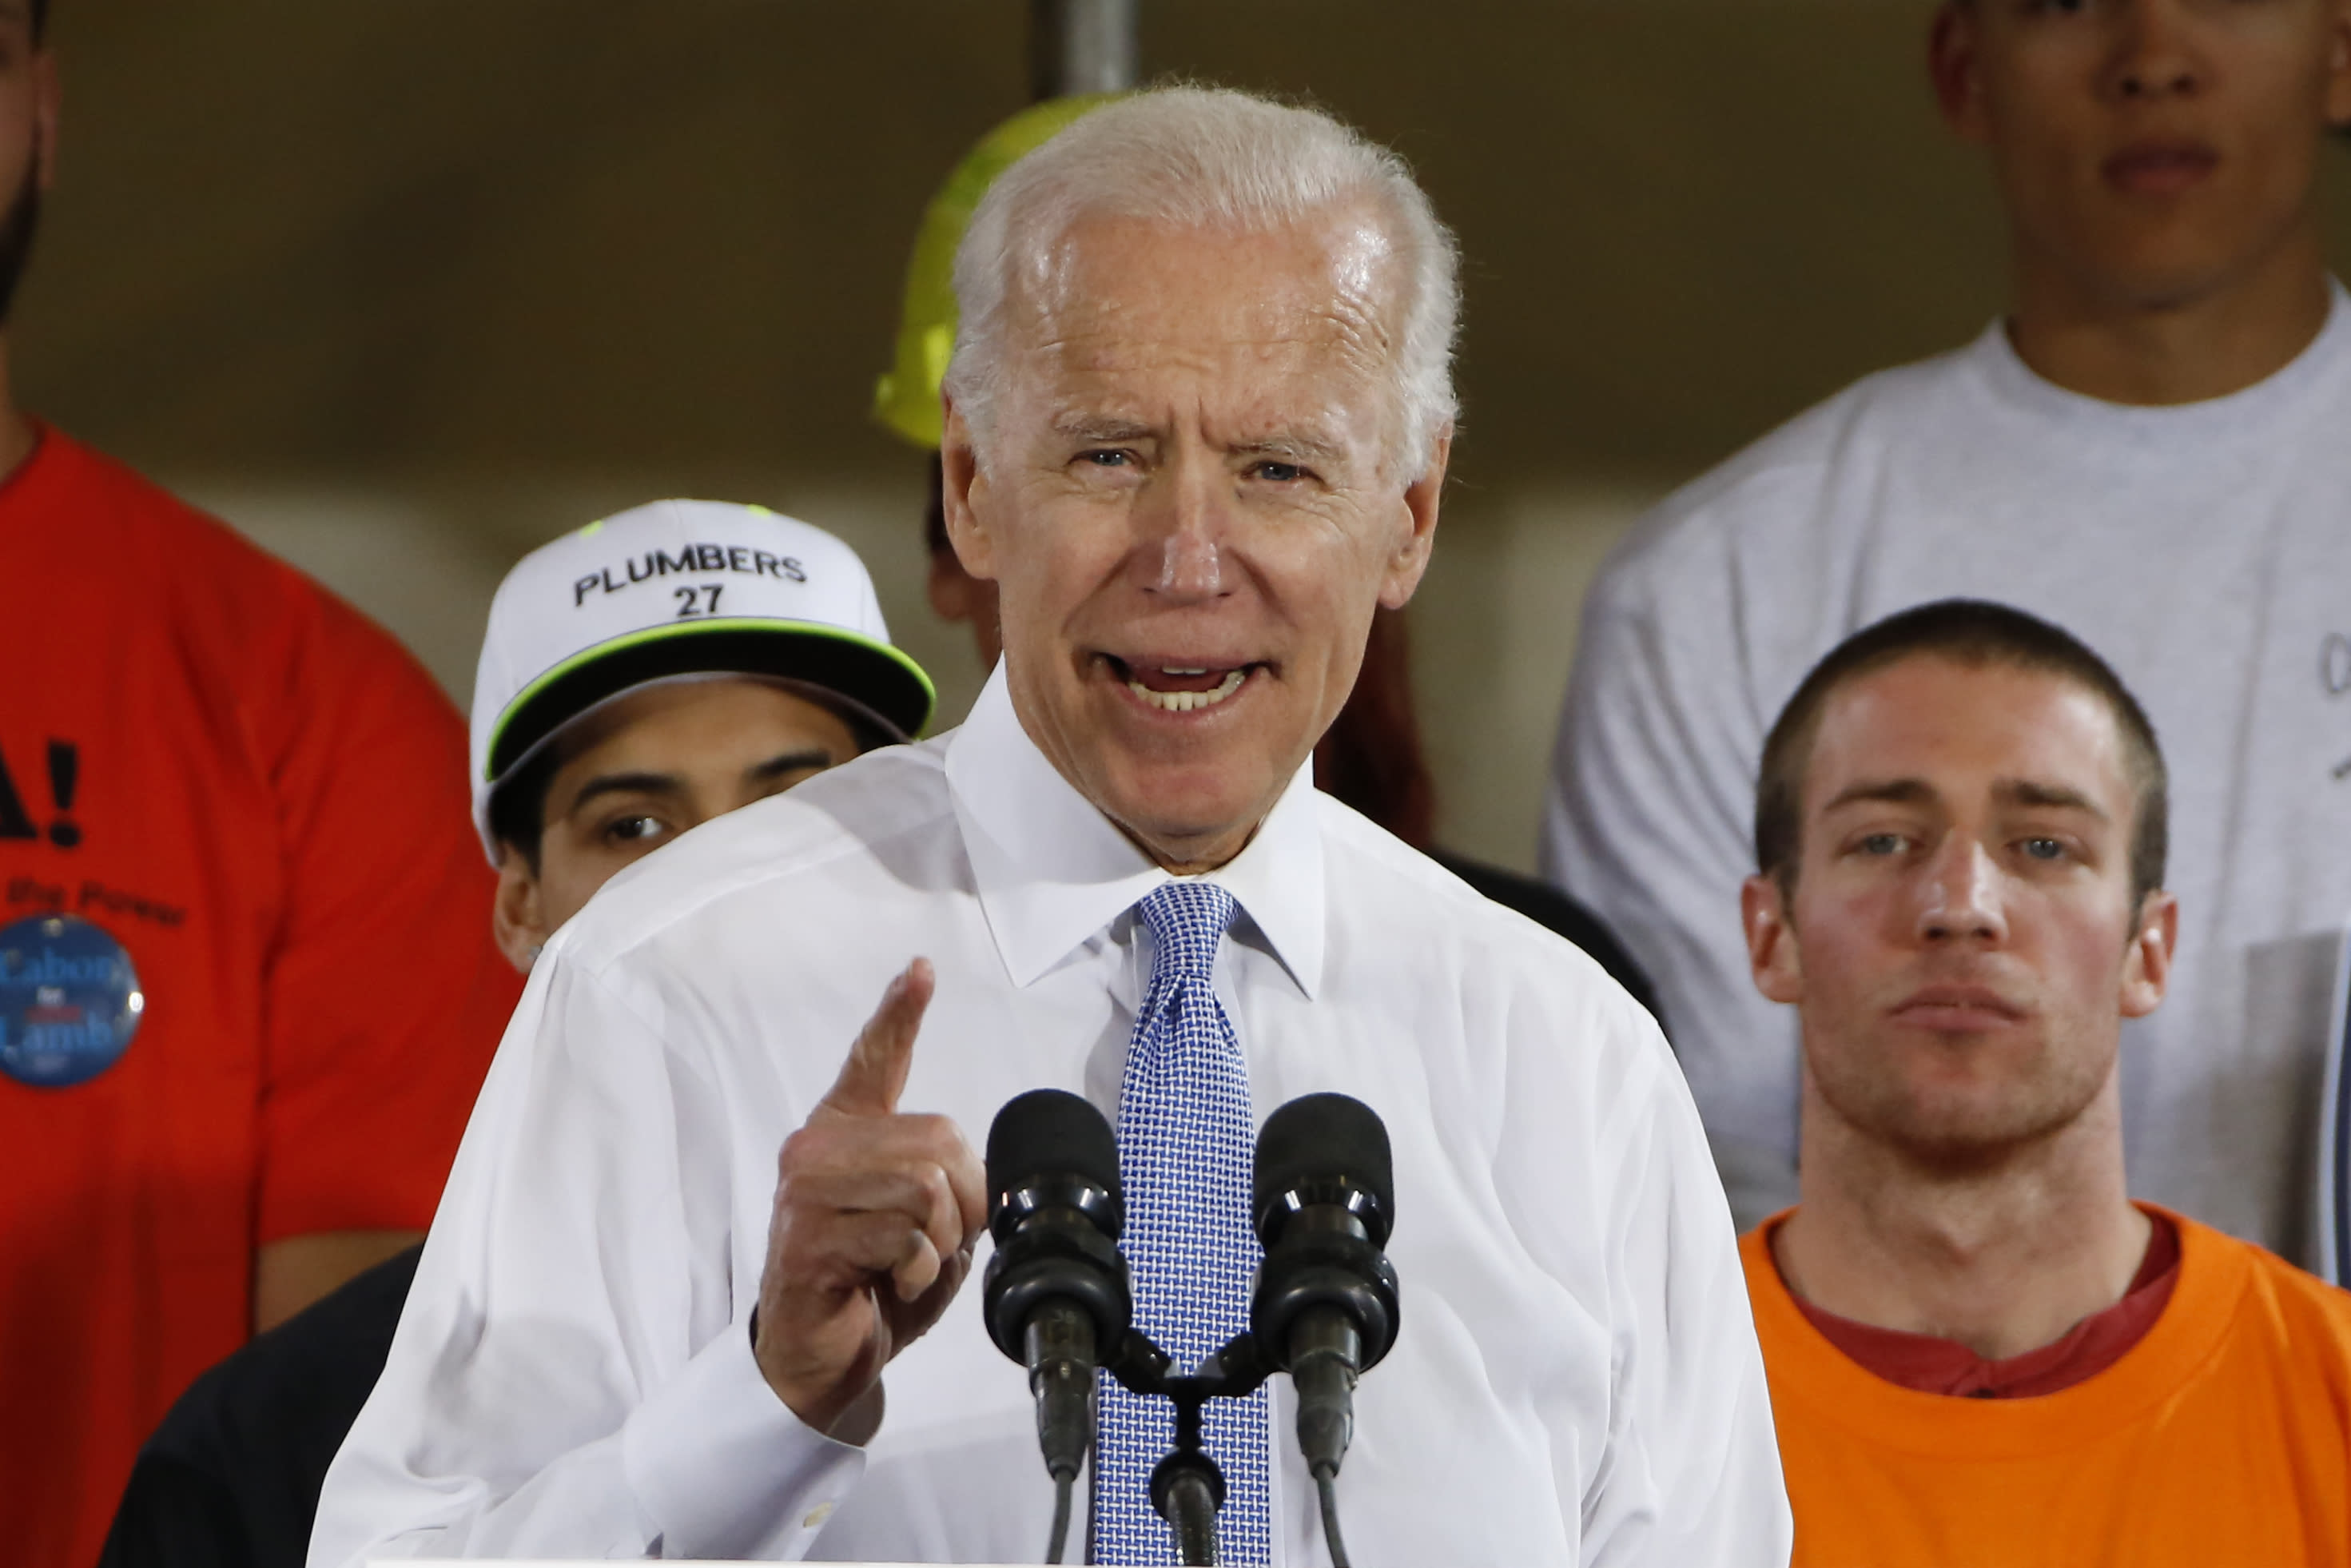 TRUMP Crazy Biden would go down crying if he assaulted me